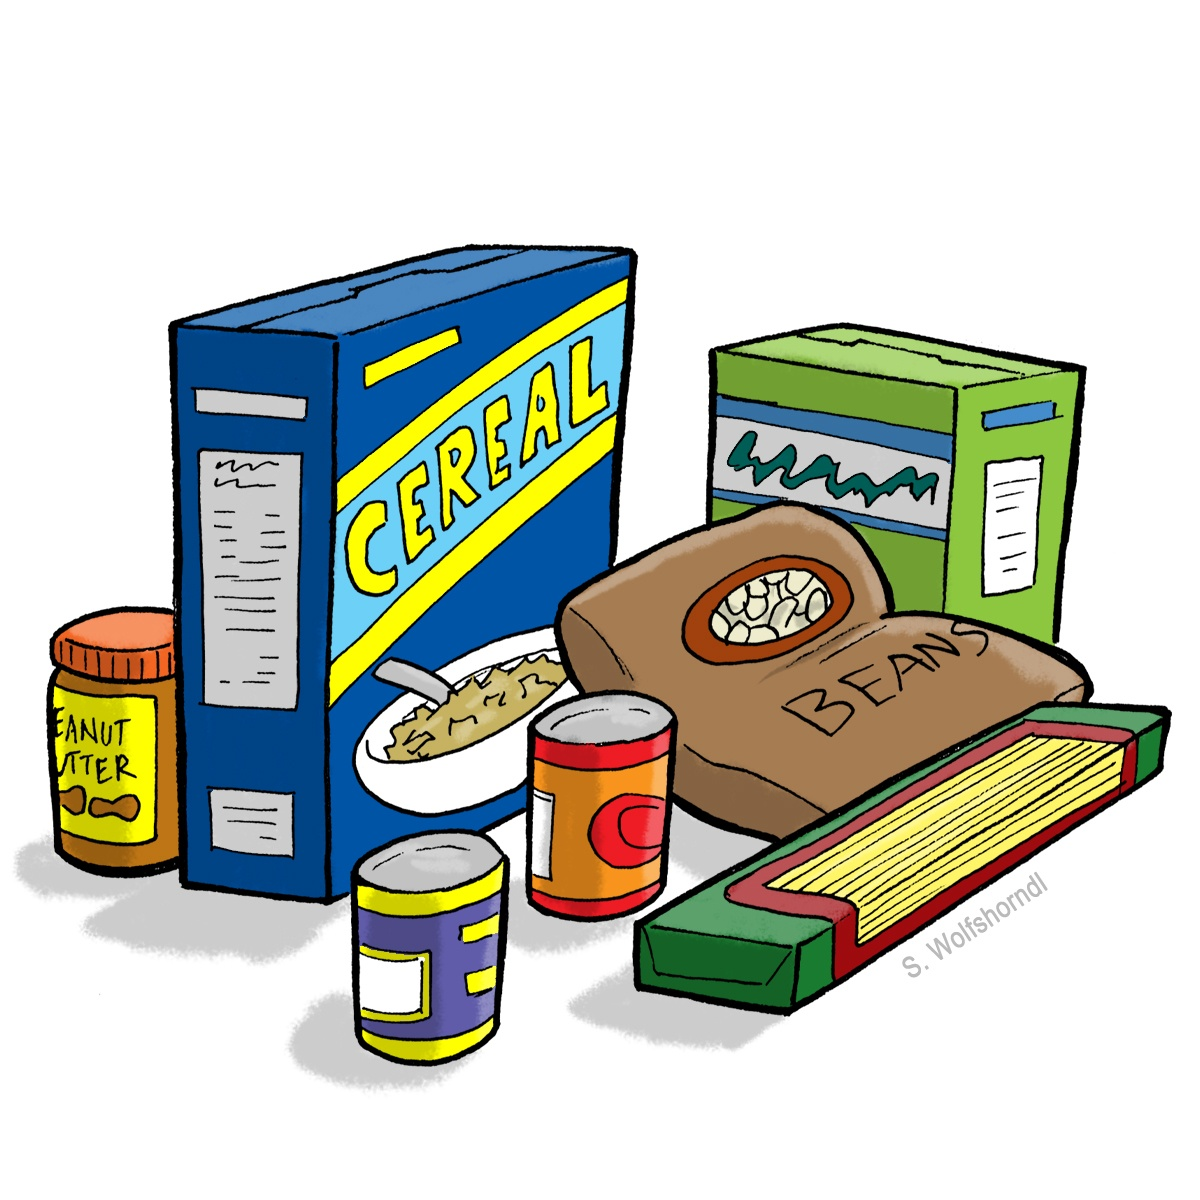 1200x1200 Food Bank Clipart Many Interesting Cliparts